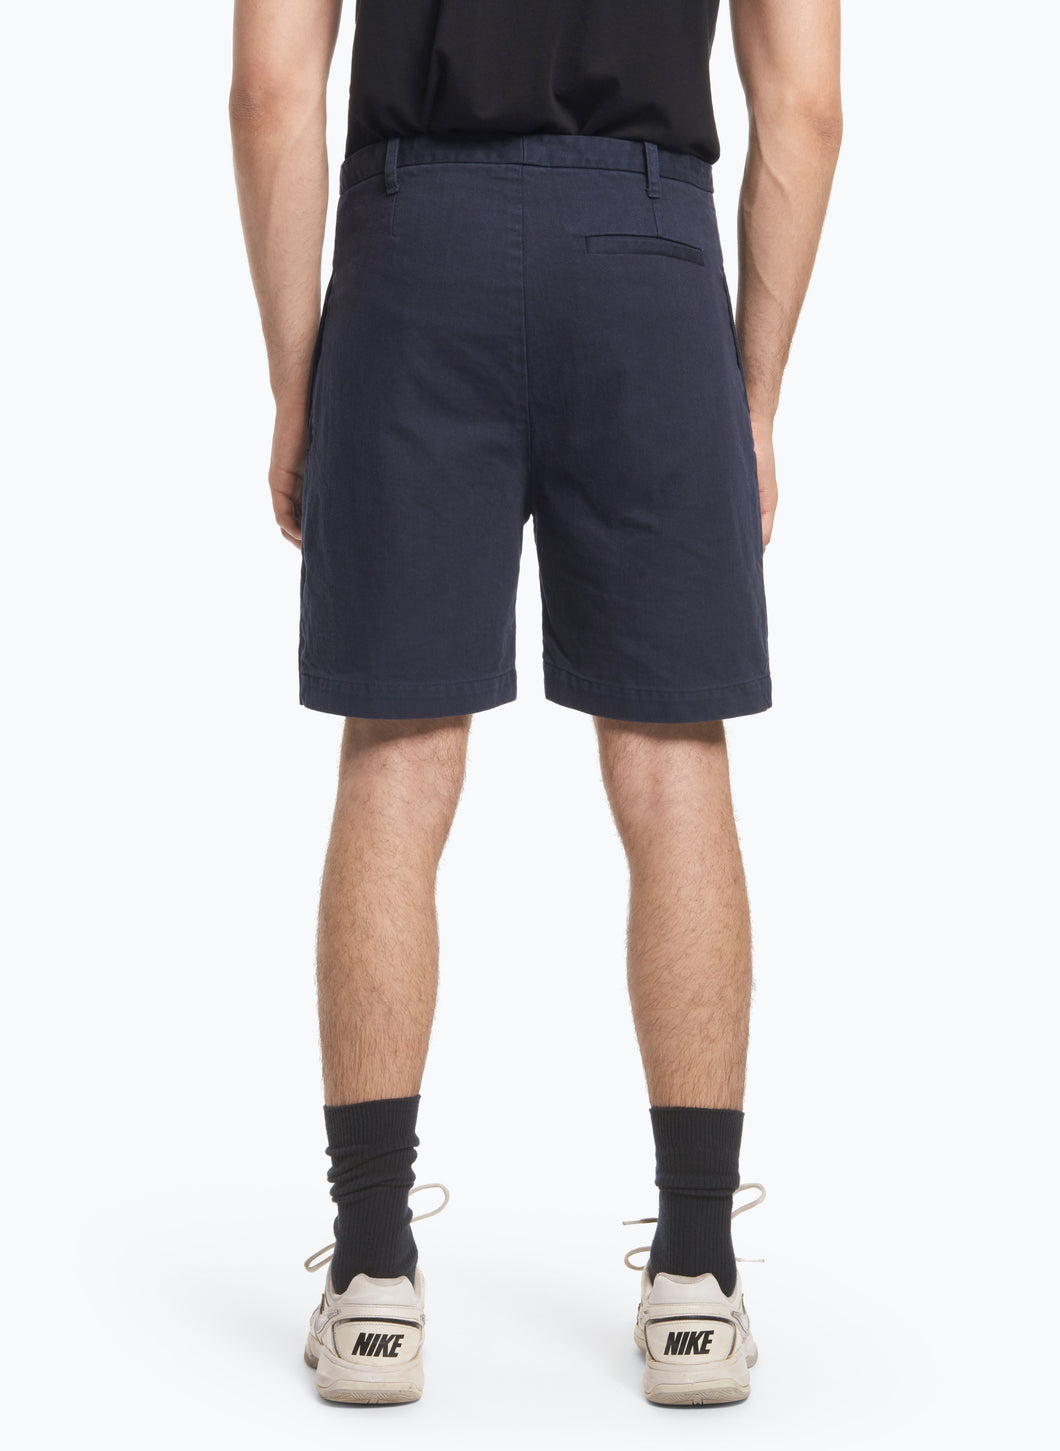 Bermuda Shorts with Notched Pockets in Navy Blue Denim